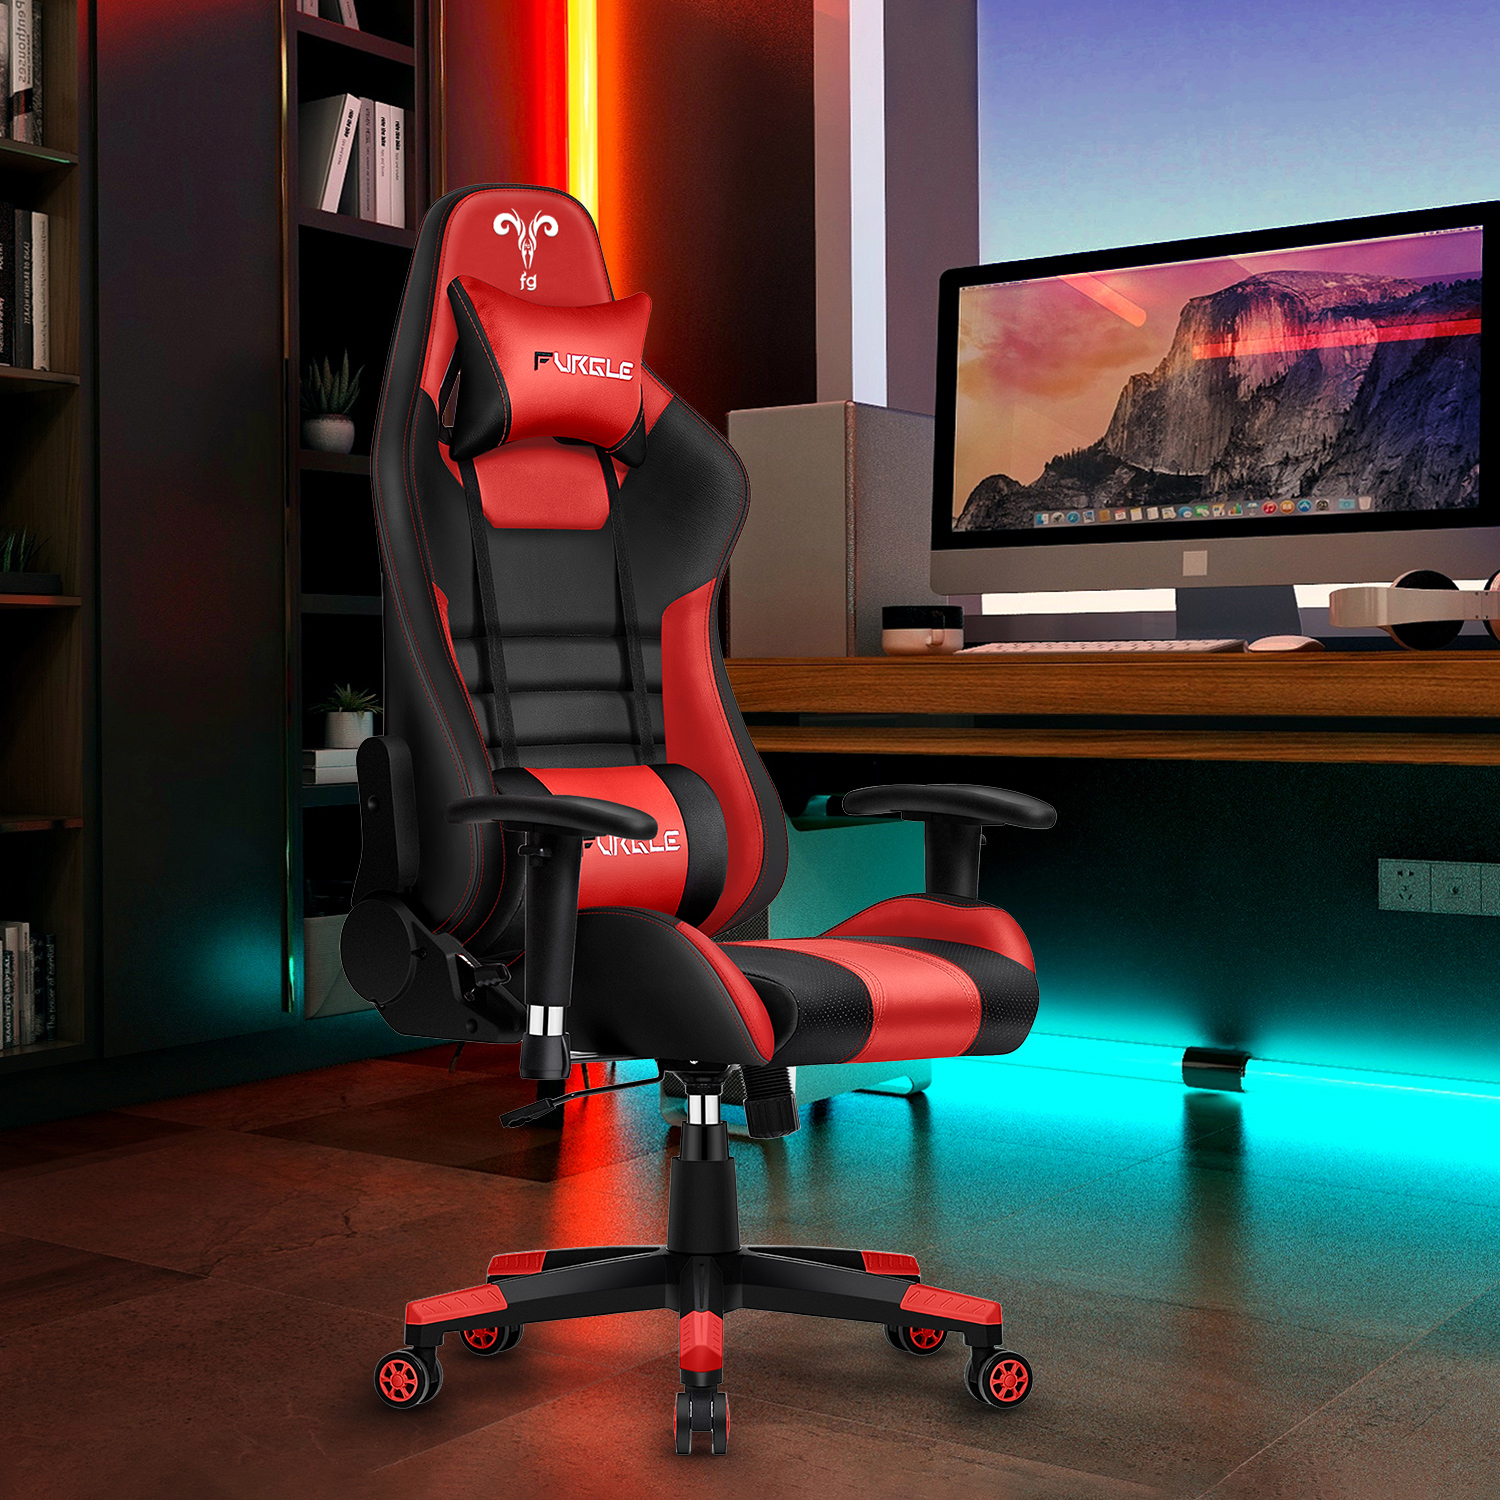 Купить с кэшбэком Furgle WCG game computer chair high quality adjustable office chair leather gaming chair black for home office game competitive